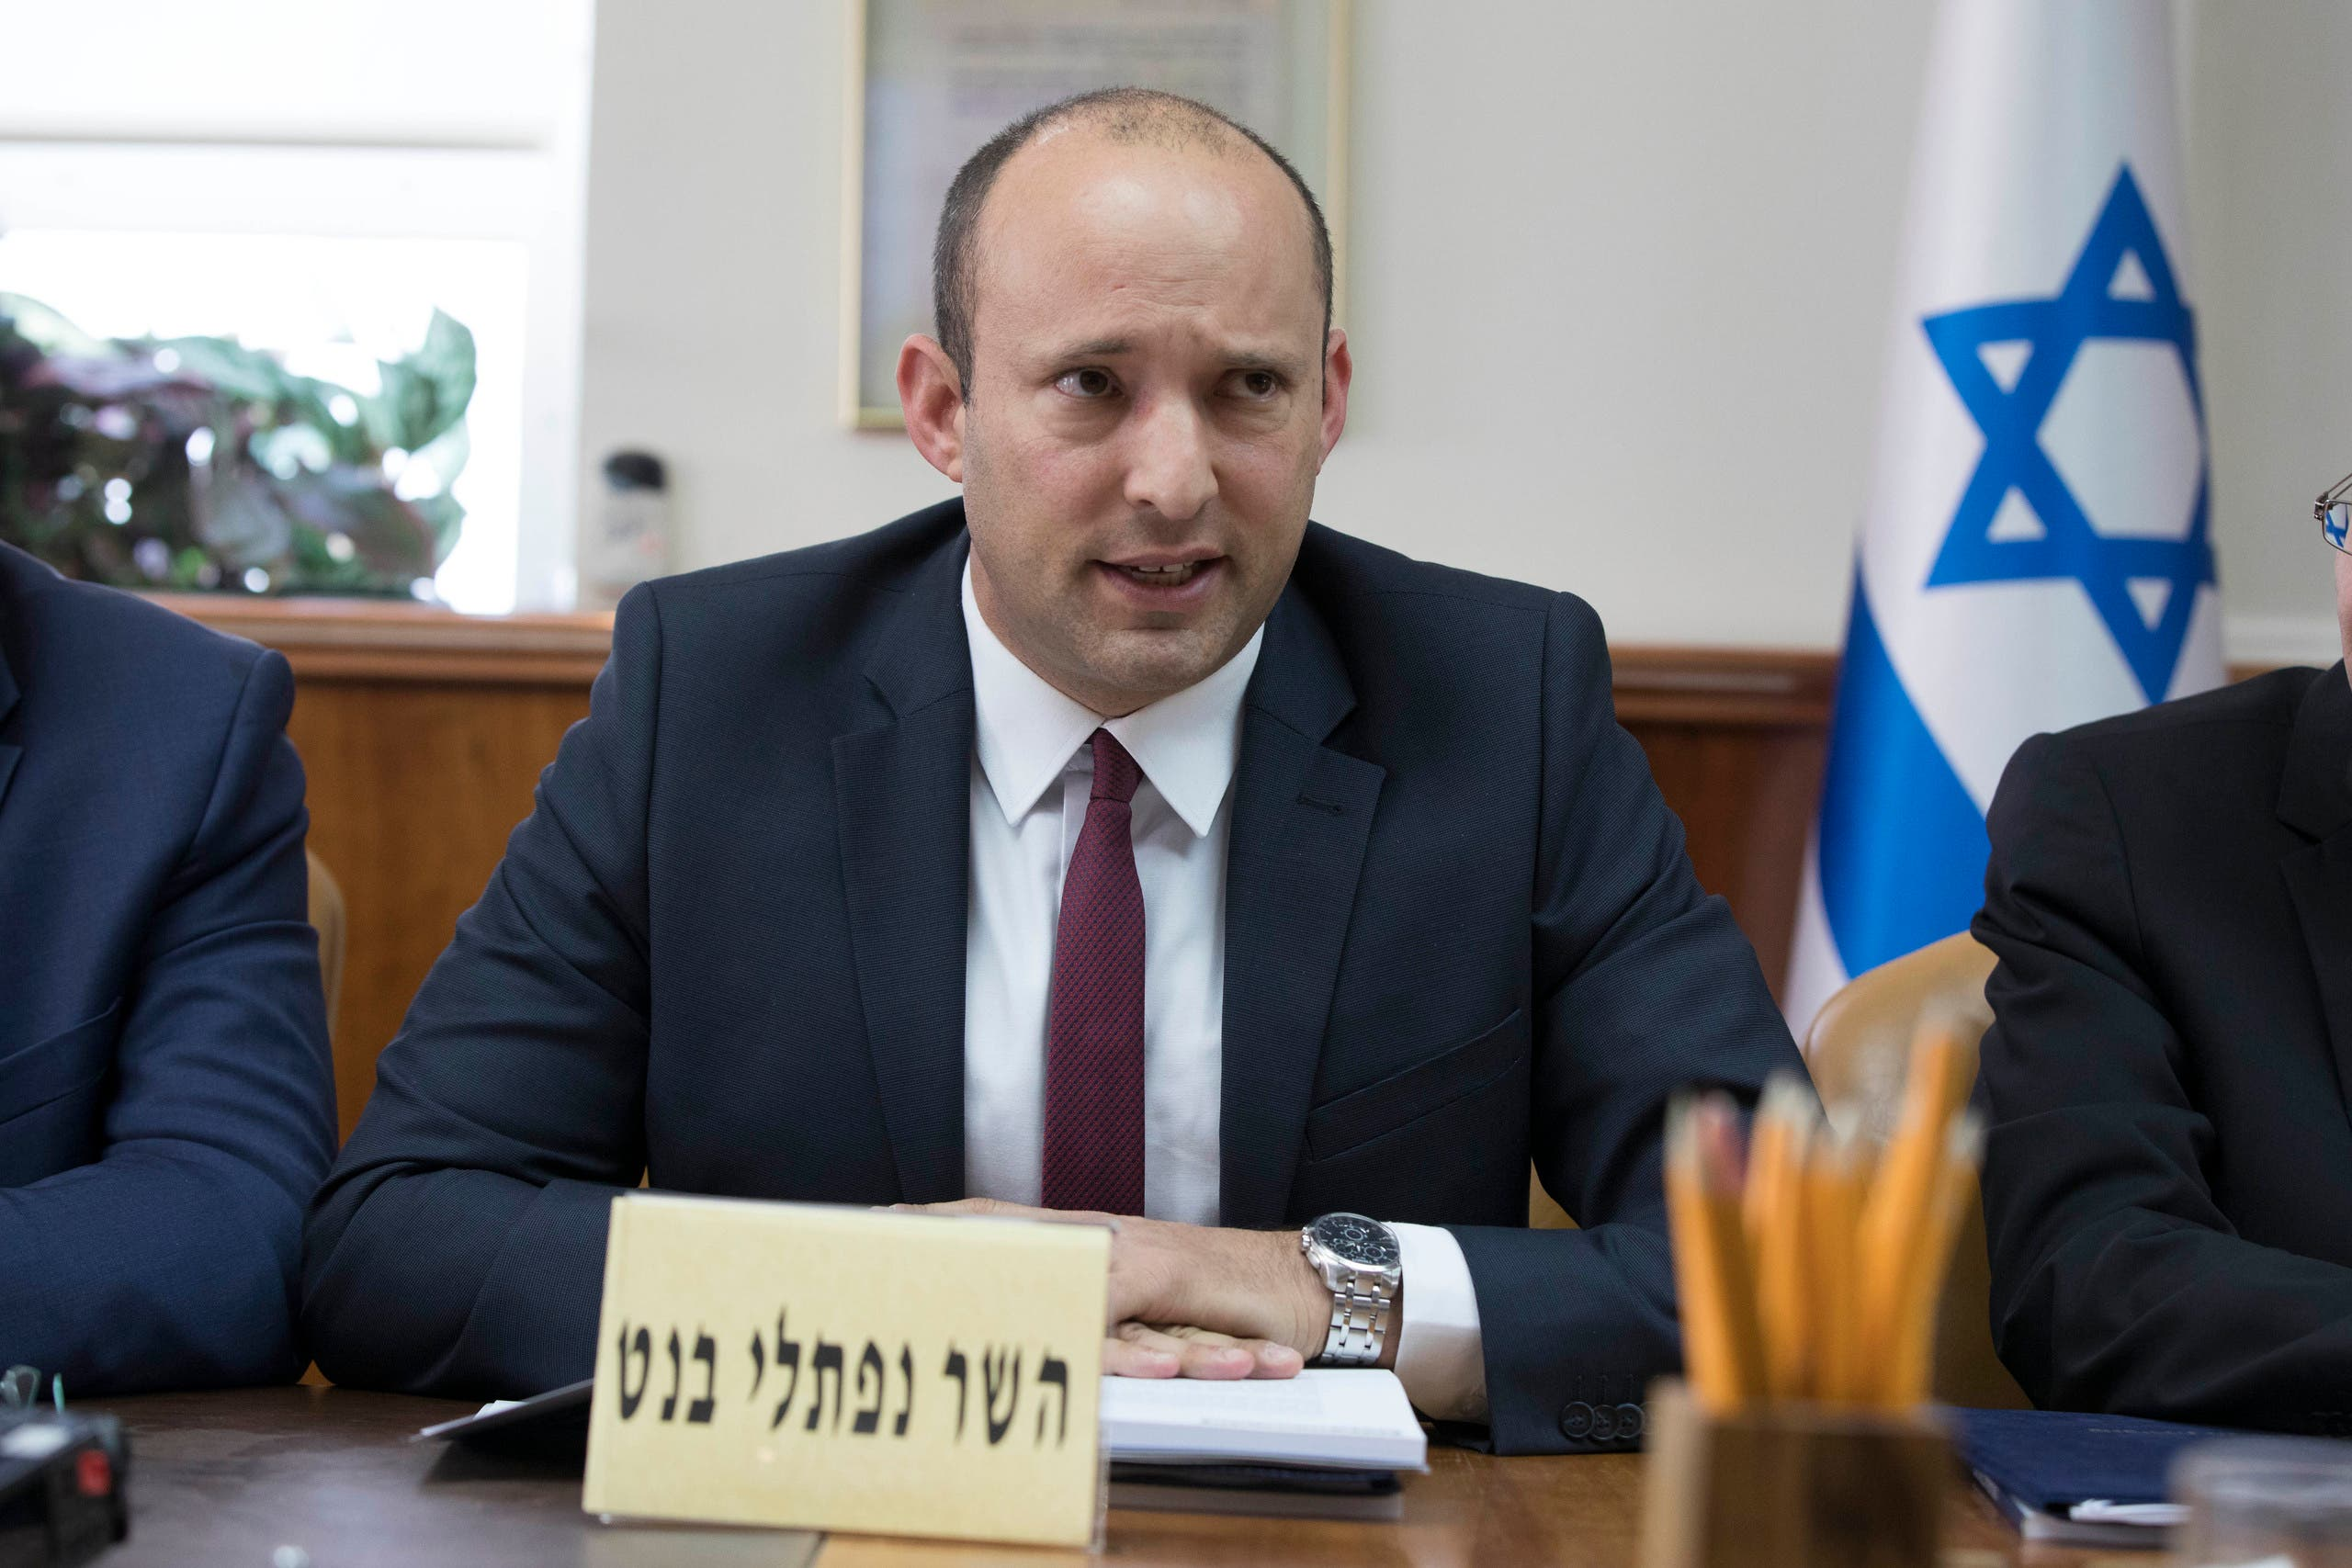 Israeli Minister Naftali Bennett speaks during the weekly cabinet meeting at prime minister office in Jerusalem on January 27, 2019. (File photo: AFP)